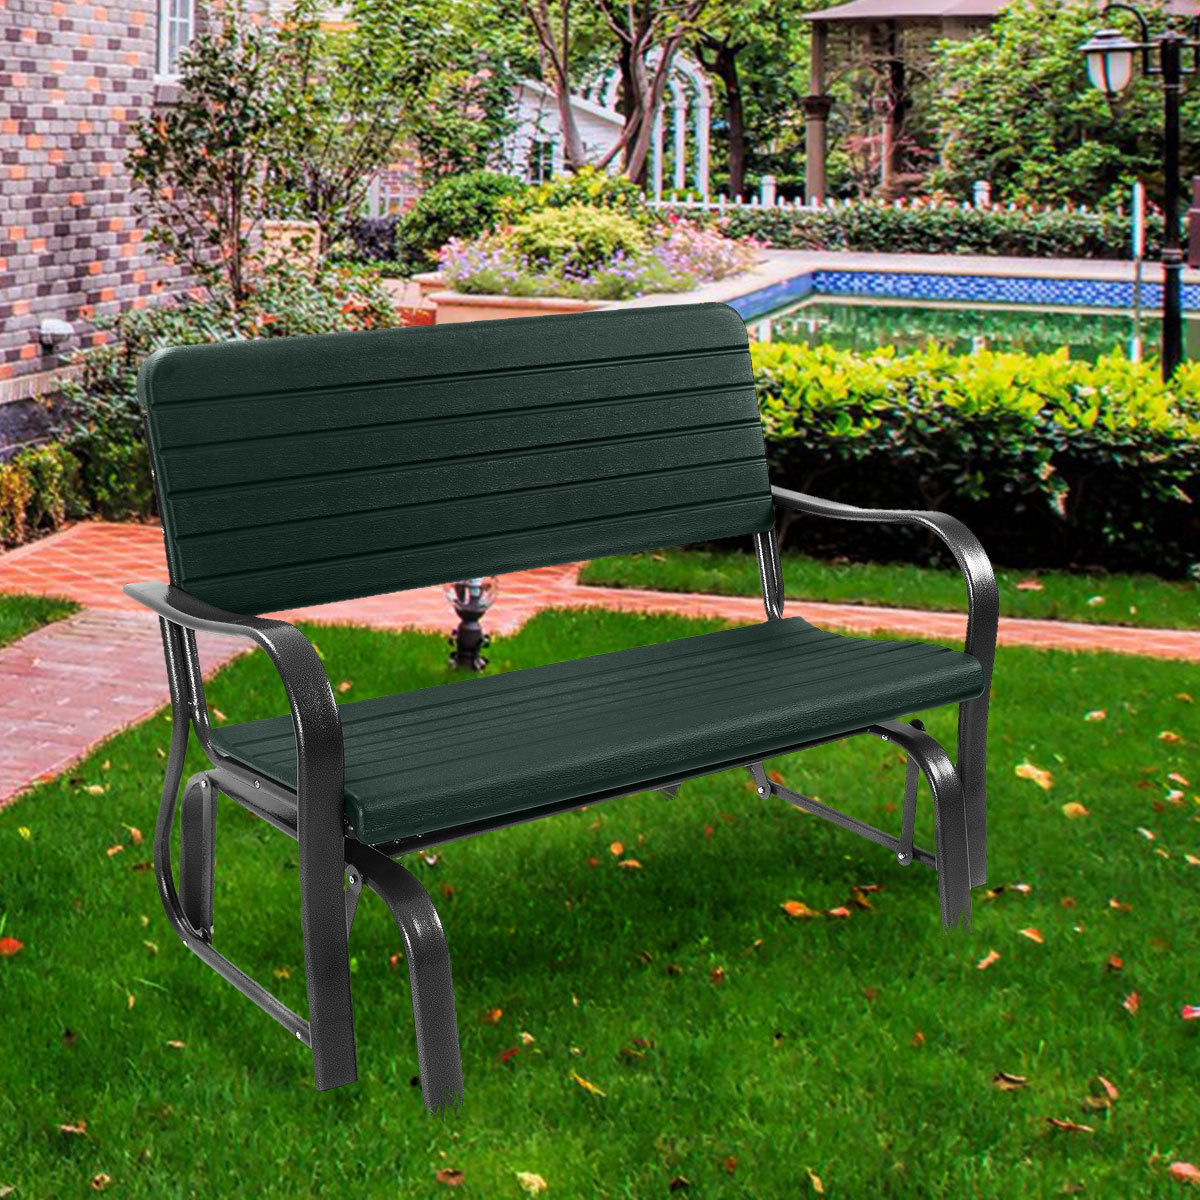 Outdoor Patio Swing Porch Rocker Glider Bench Loveseat Garden Seat Steel Throughout Best And Newest Outdoor Steel Patio Swing Glider Benches (View 20 of 25)